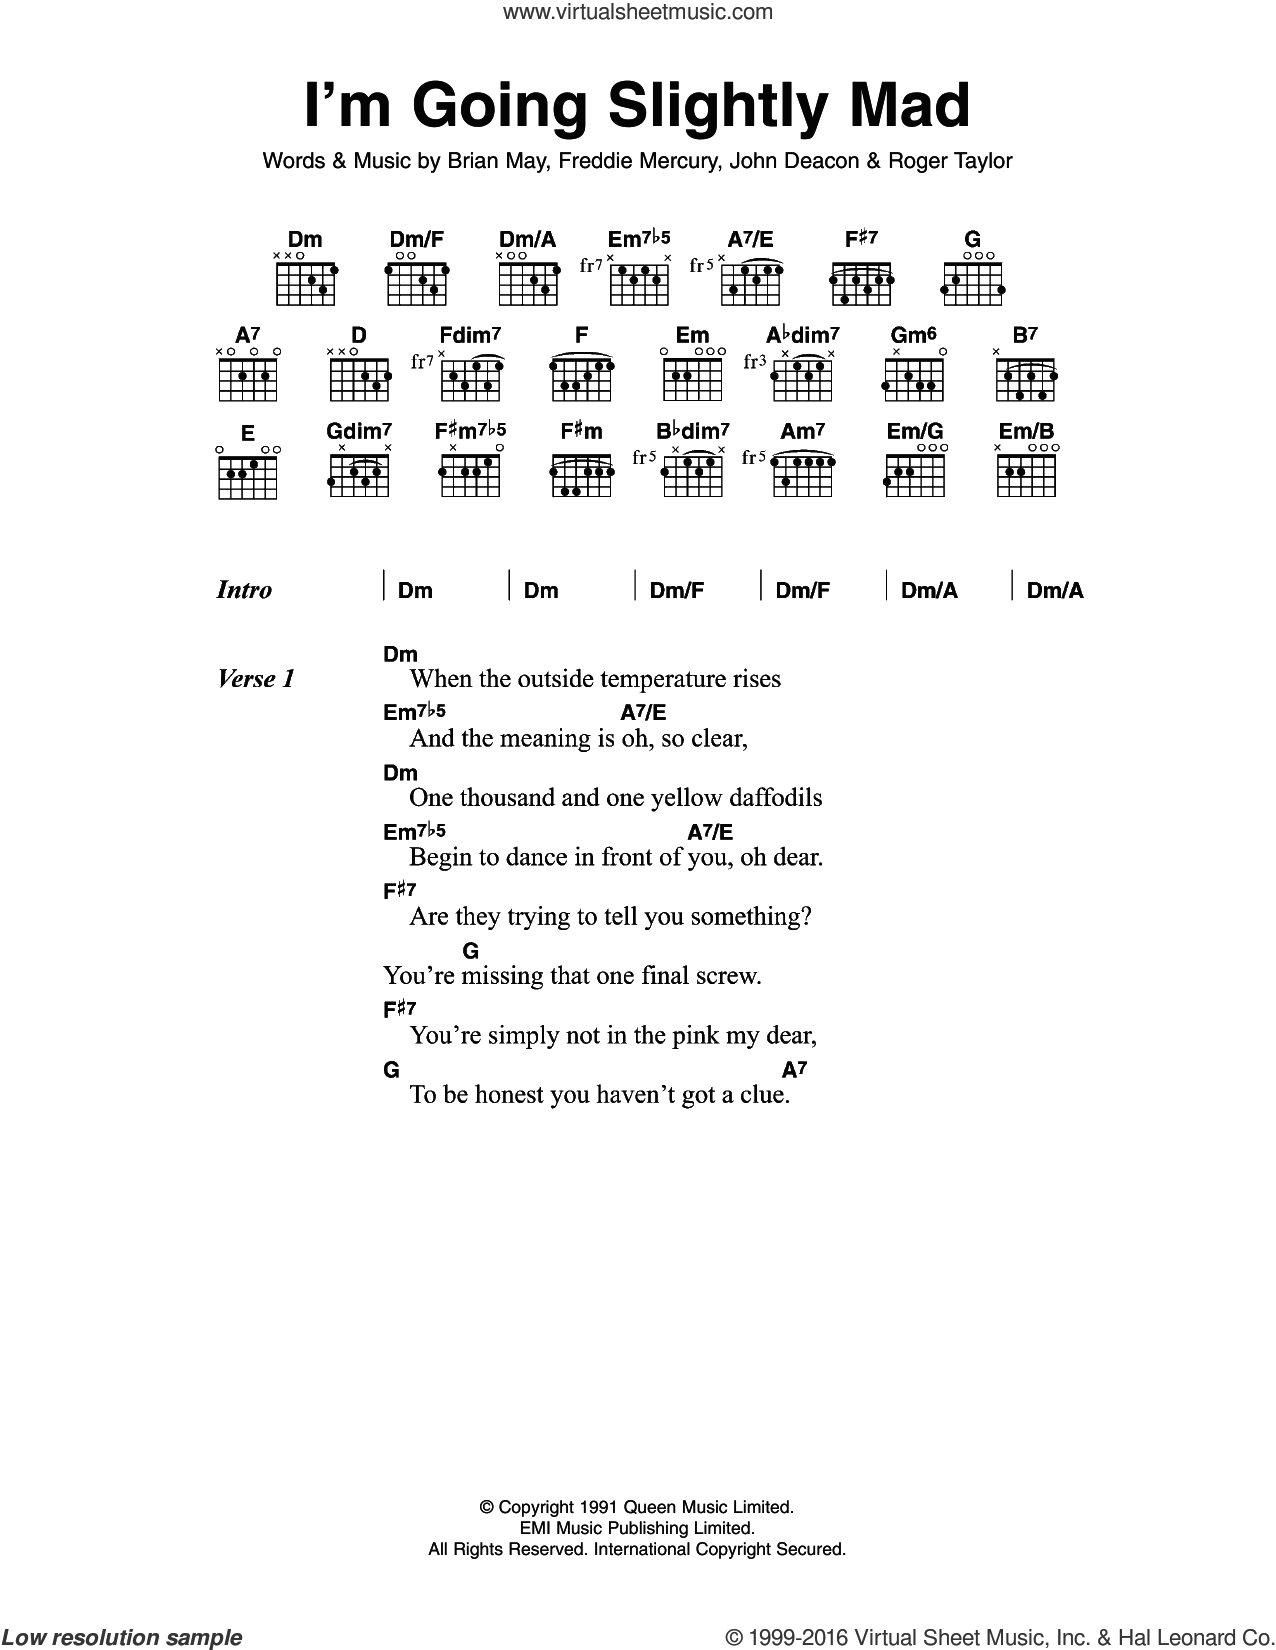 I'm Going Slightly Mad sheet music for guitar (chords) by Queen, Brian May, Freddie Mercury, John Deacon and Roger Taylor, intermediate